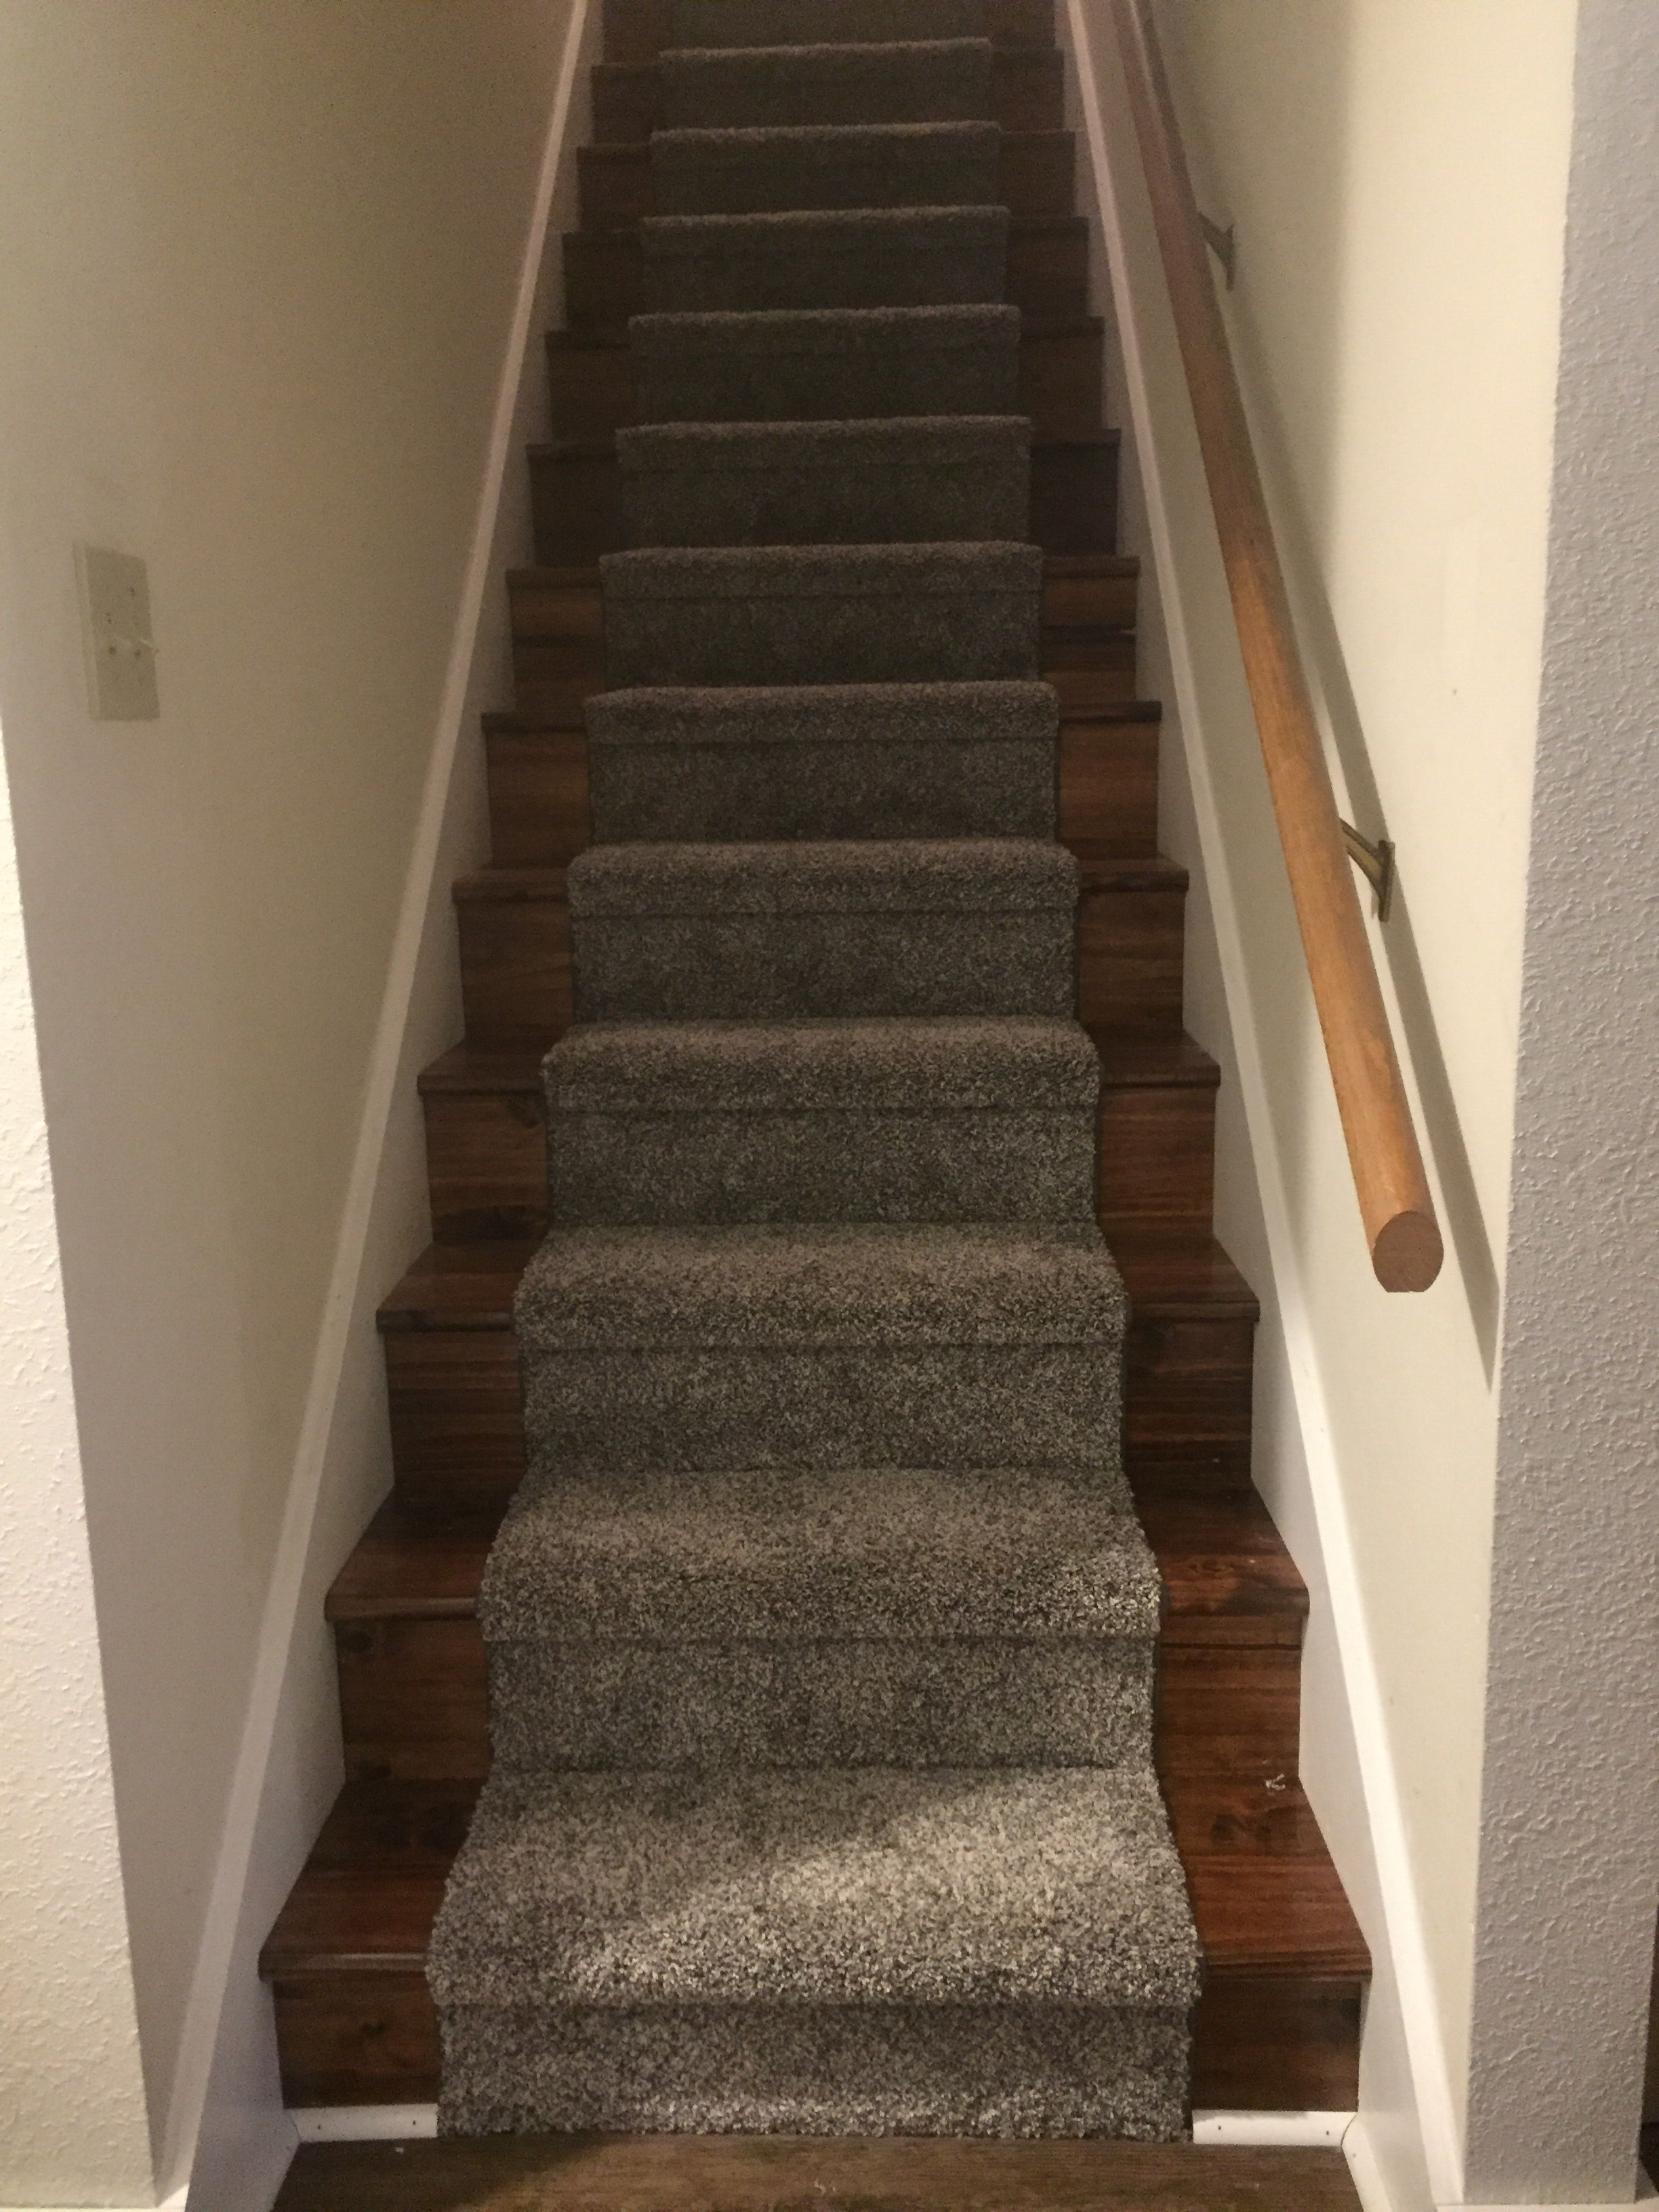 Carpeted Stairs With Runner And Stained Steps Stair Runner   Stained Stairs And Risers   Two Tone   Natural   Bead Board   Gray Painted   Finished